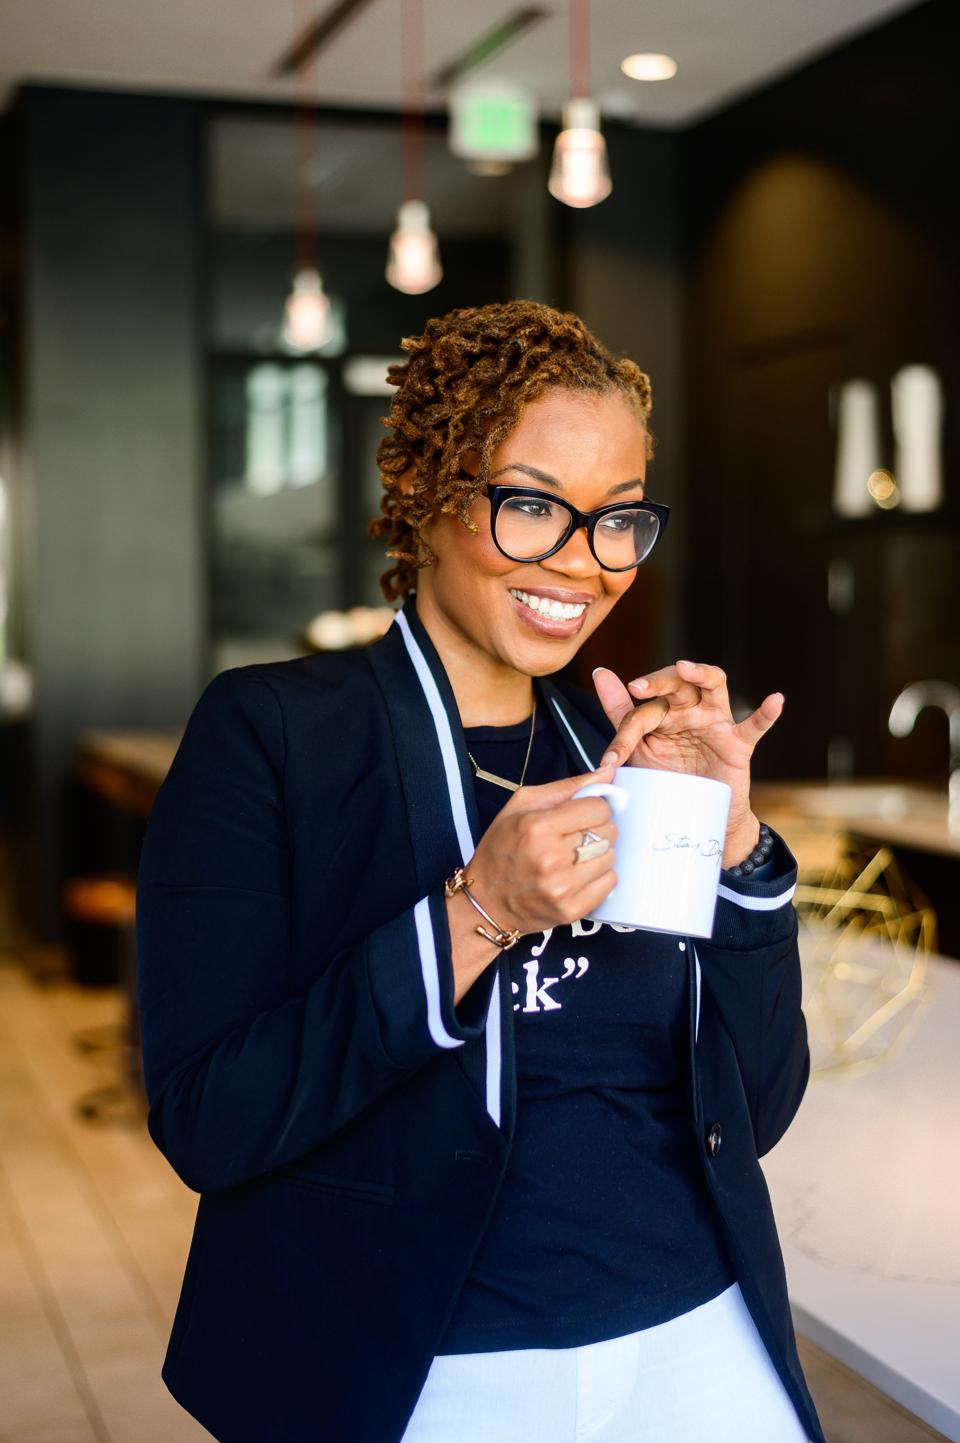 A Black woman with glasses holding a coffee cup, smiling